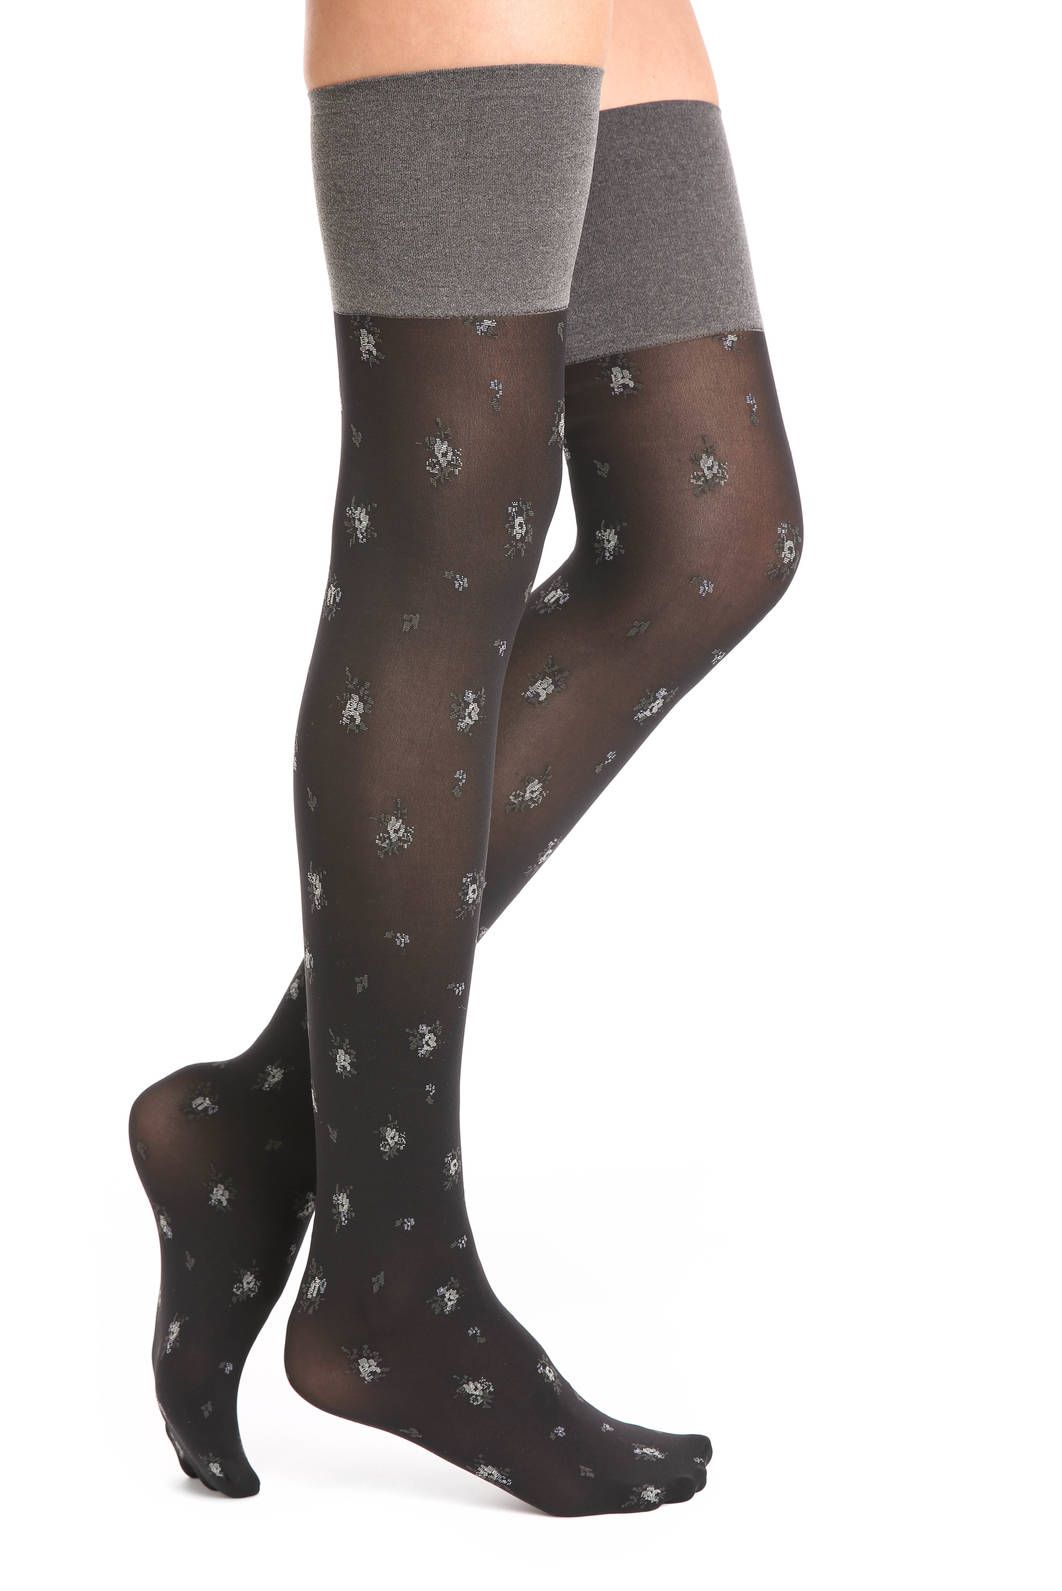 HUE Floral Over-the-Knee Boot Liner Socks | South Moon Under